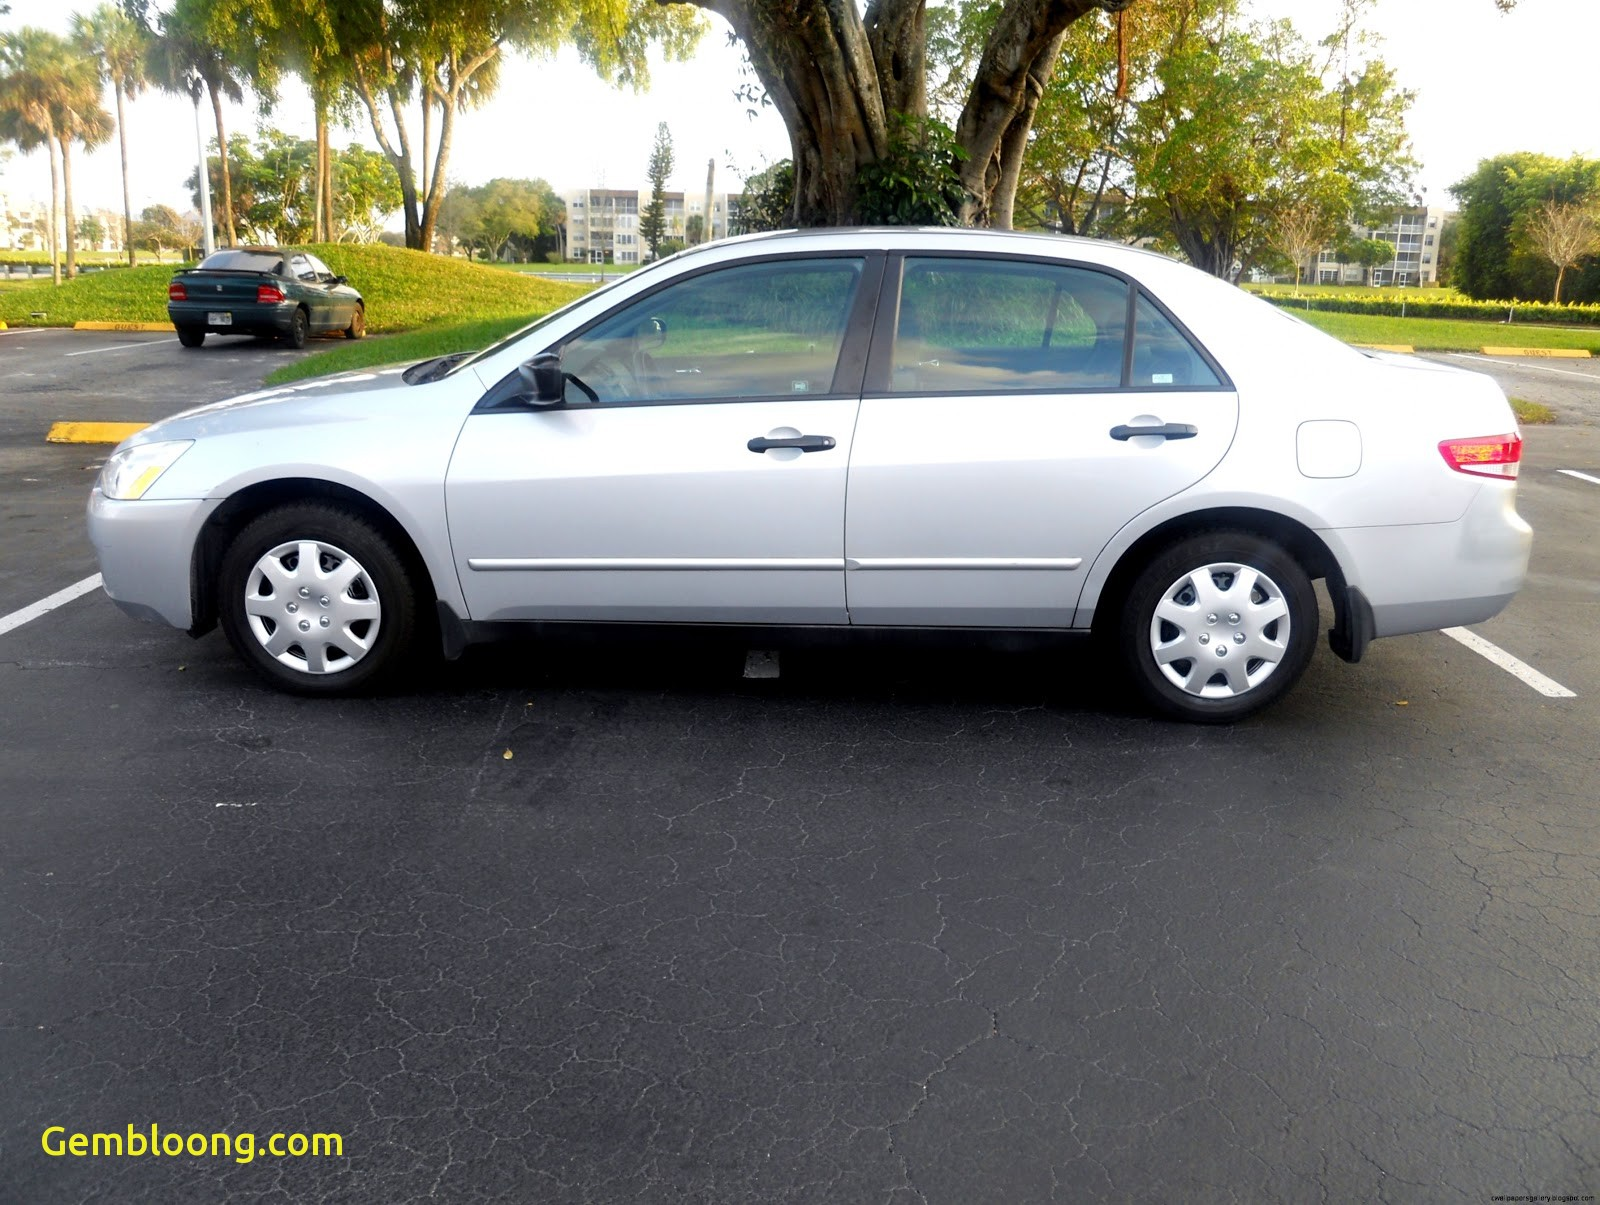 Cars for Sale Close to Me New Cars for Sale Near Inspirational Beautiful Cars for Sale Near